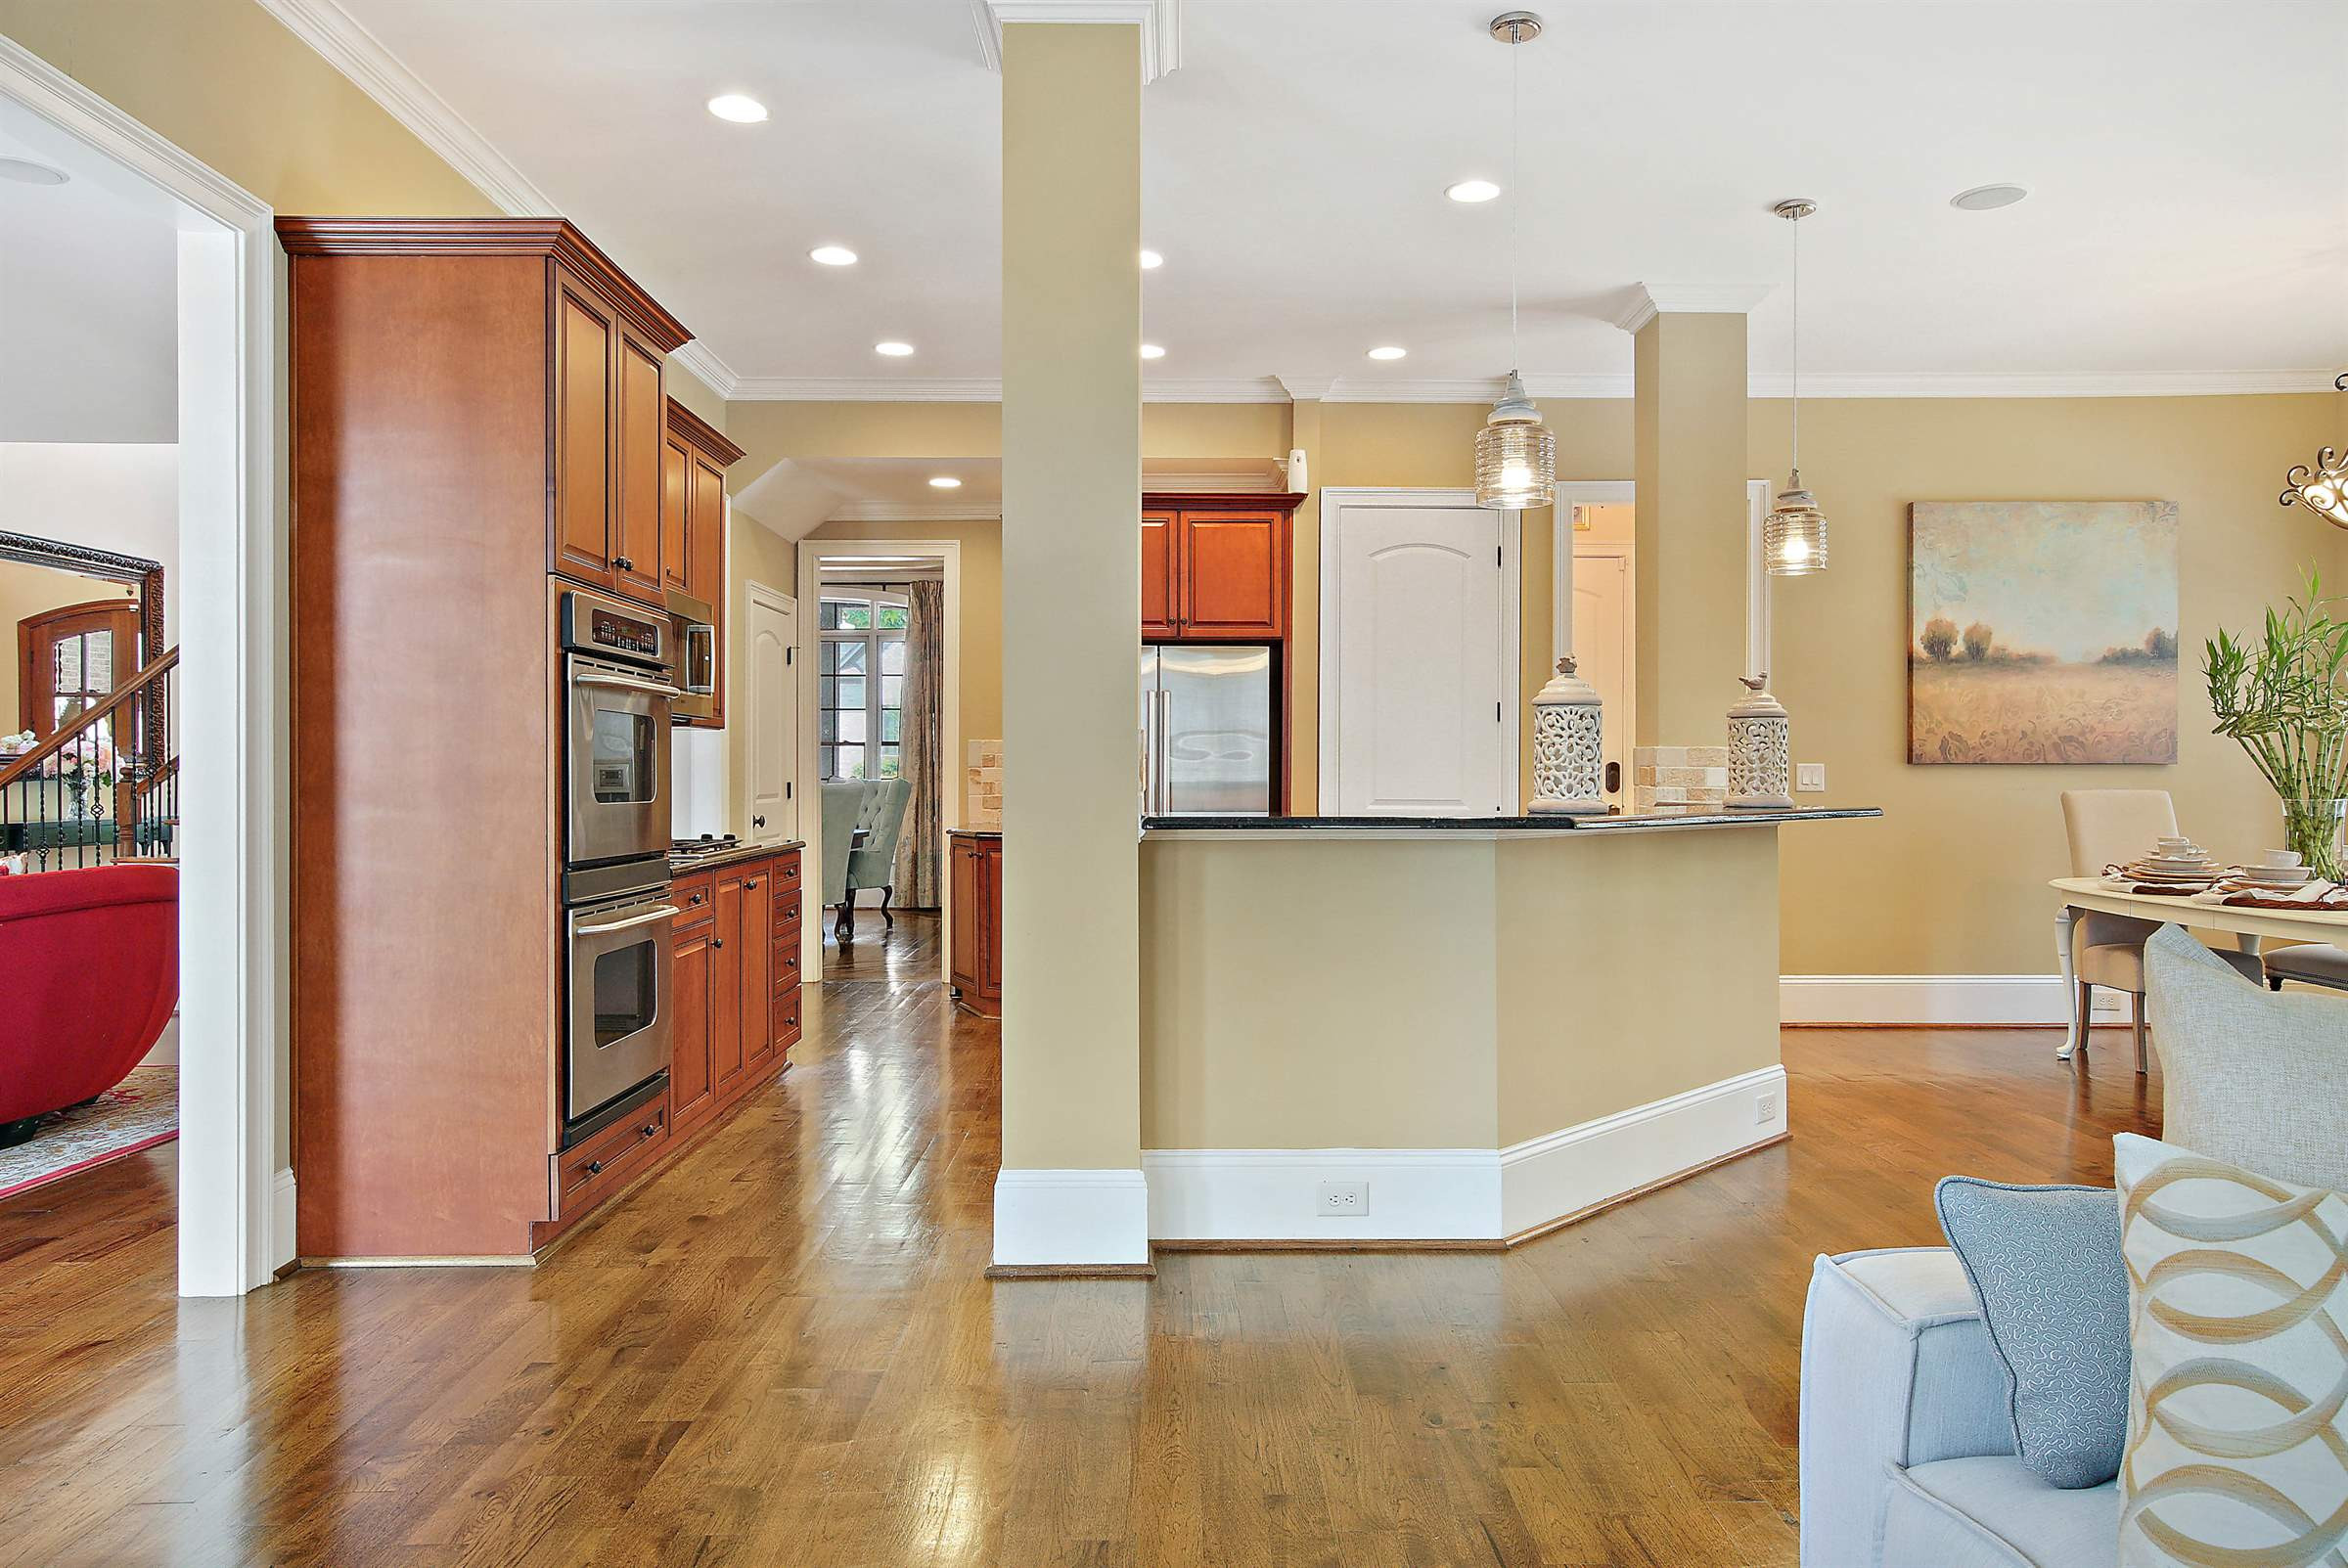 hardwood flooring waxhaw nc of 1400 becklow court indian trail nc 28079 listings nexthome pertaining to 1400 becklow court indian trail nc 28079